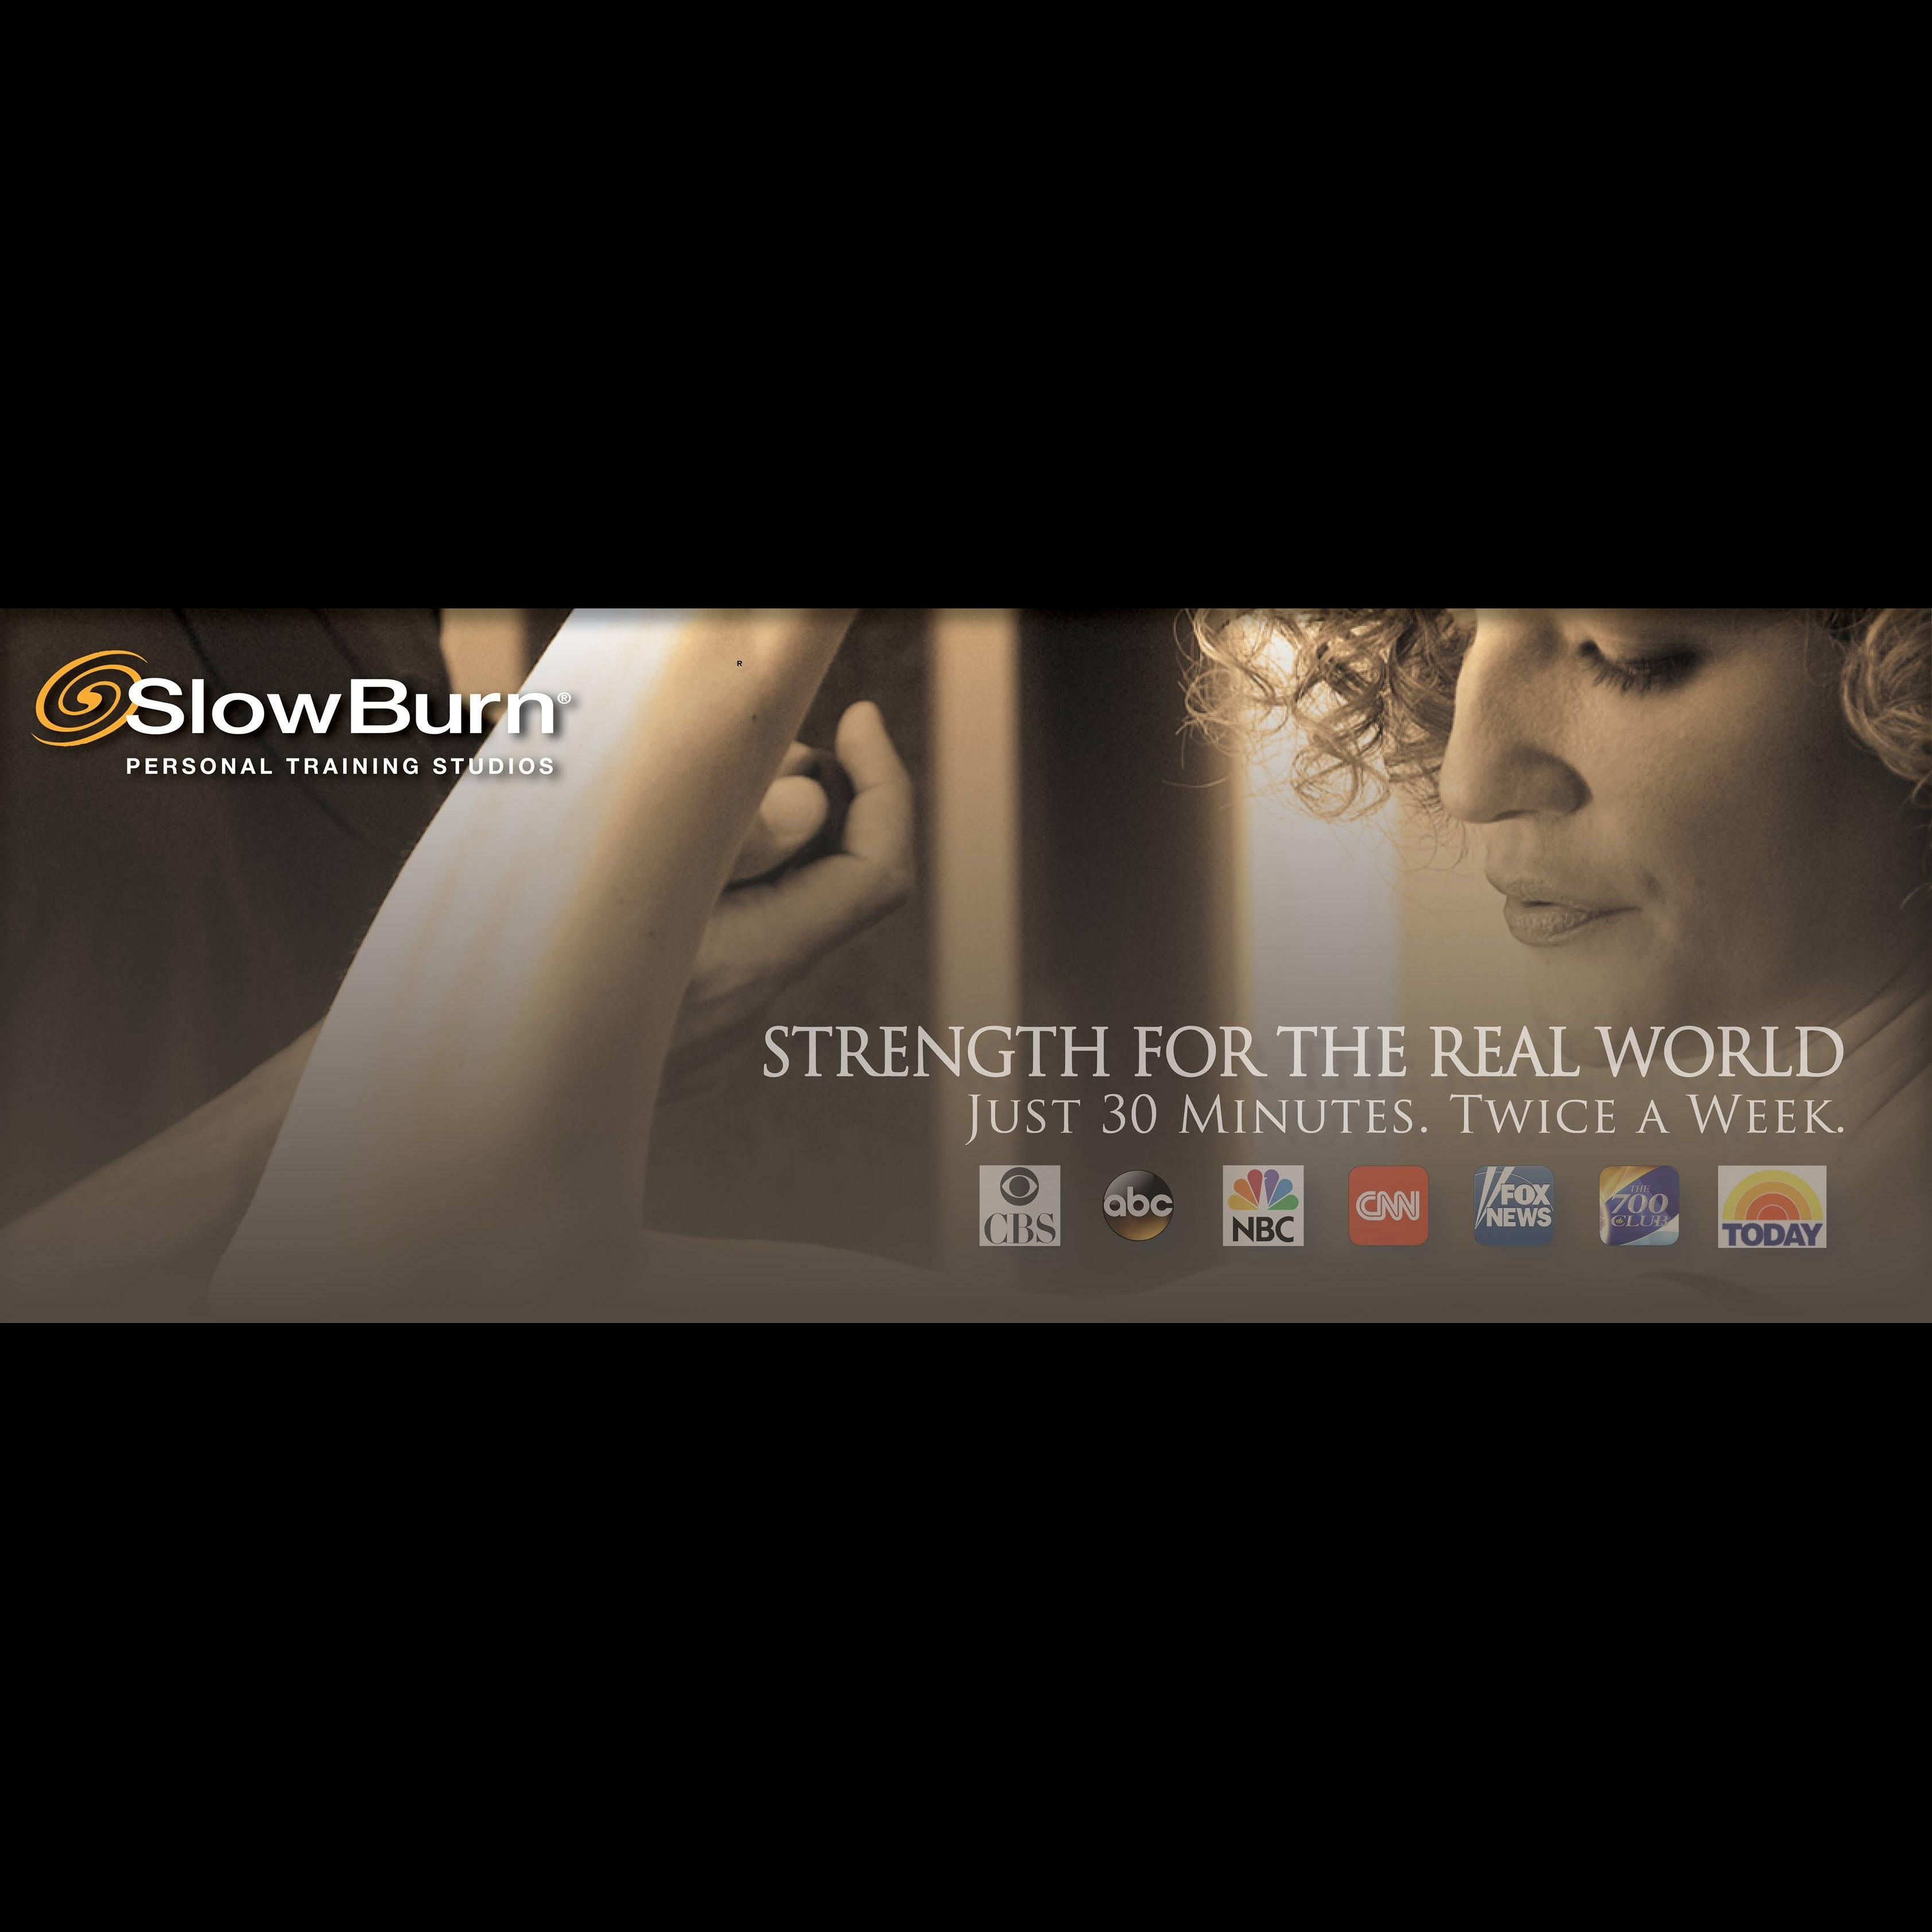 SlowBurn Personal Training Studios - New York, NY - Personal Trainers